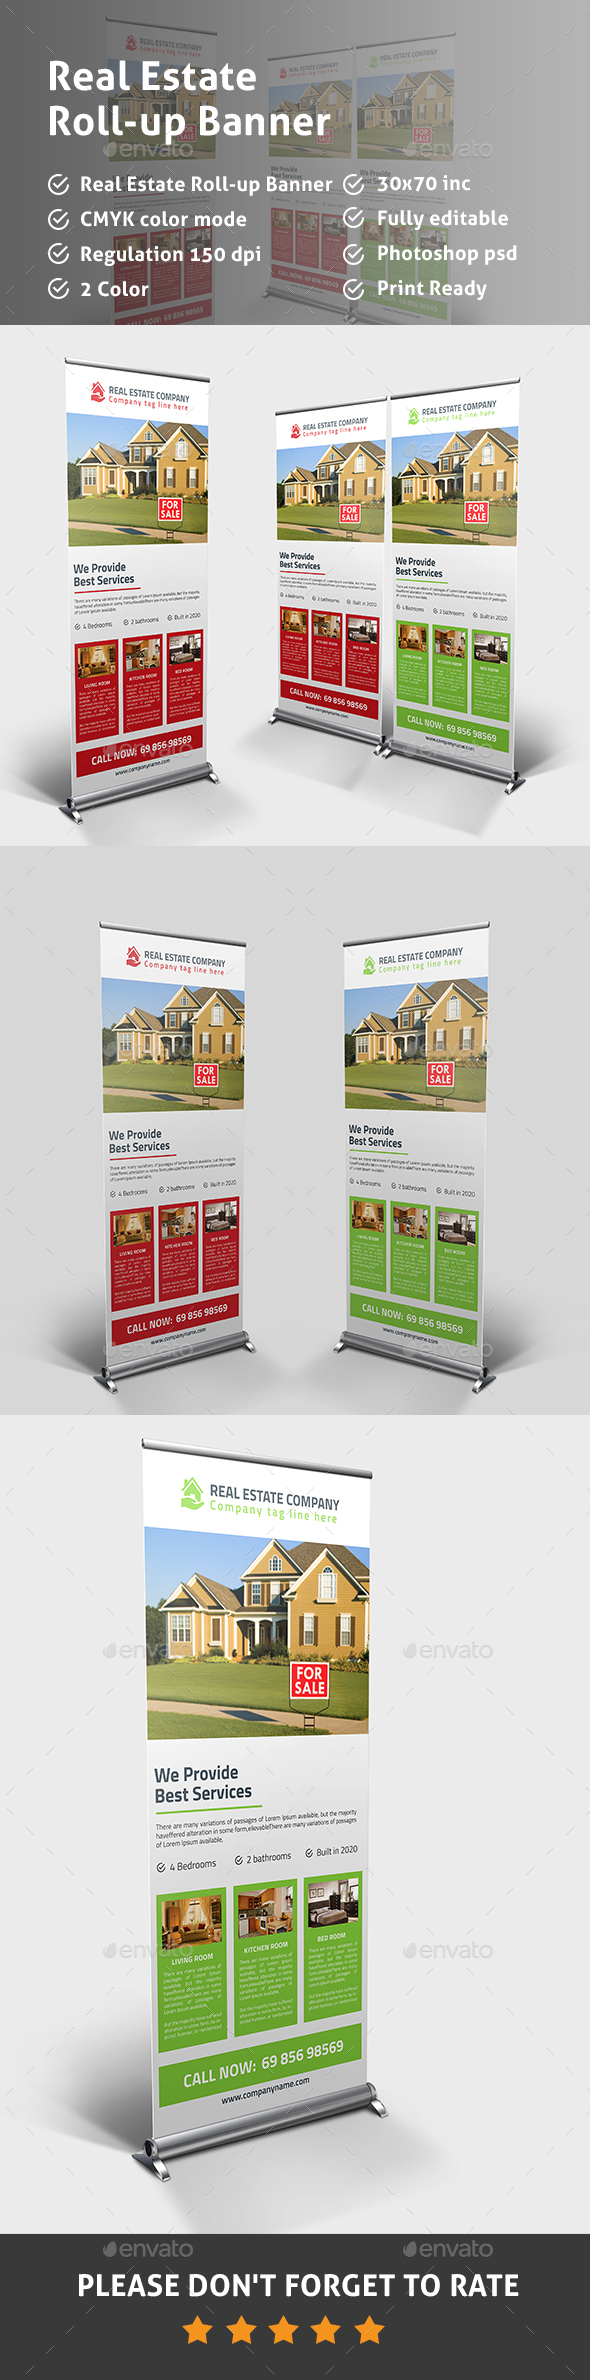 Real Estate Rollup Banner PSD Template - Signage Print Templates